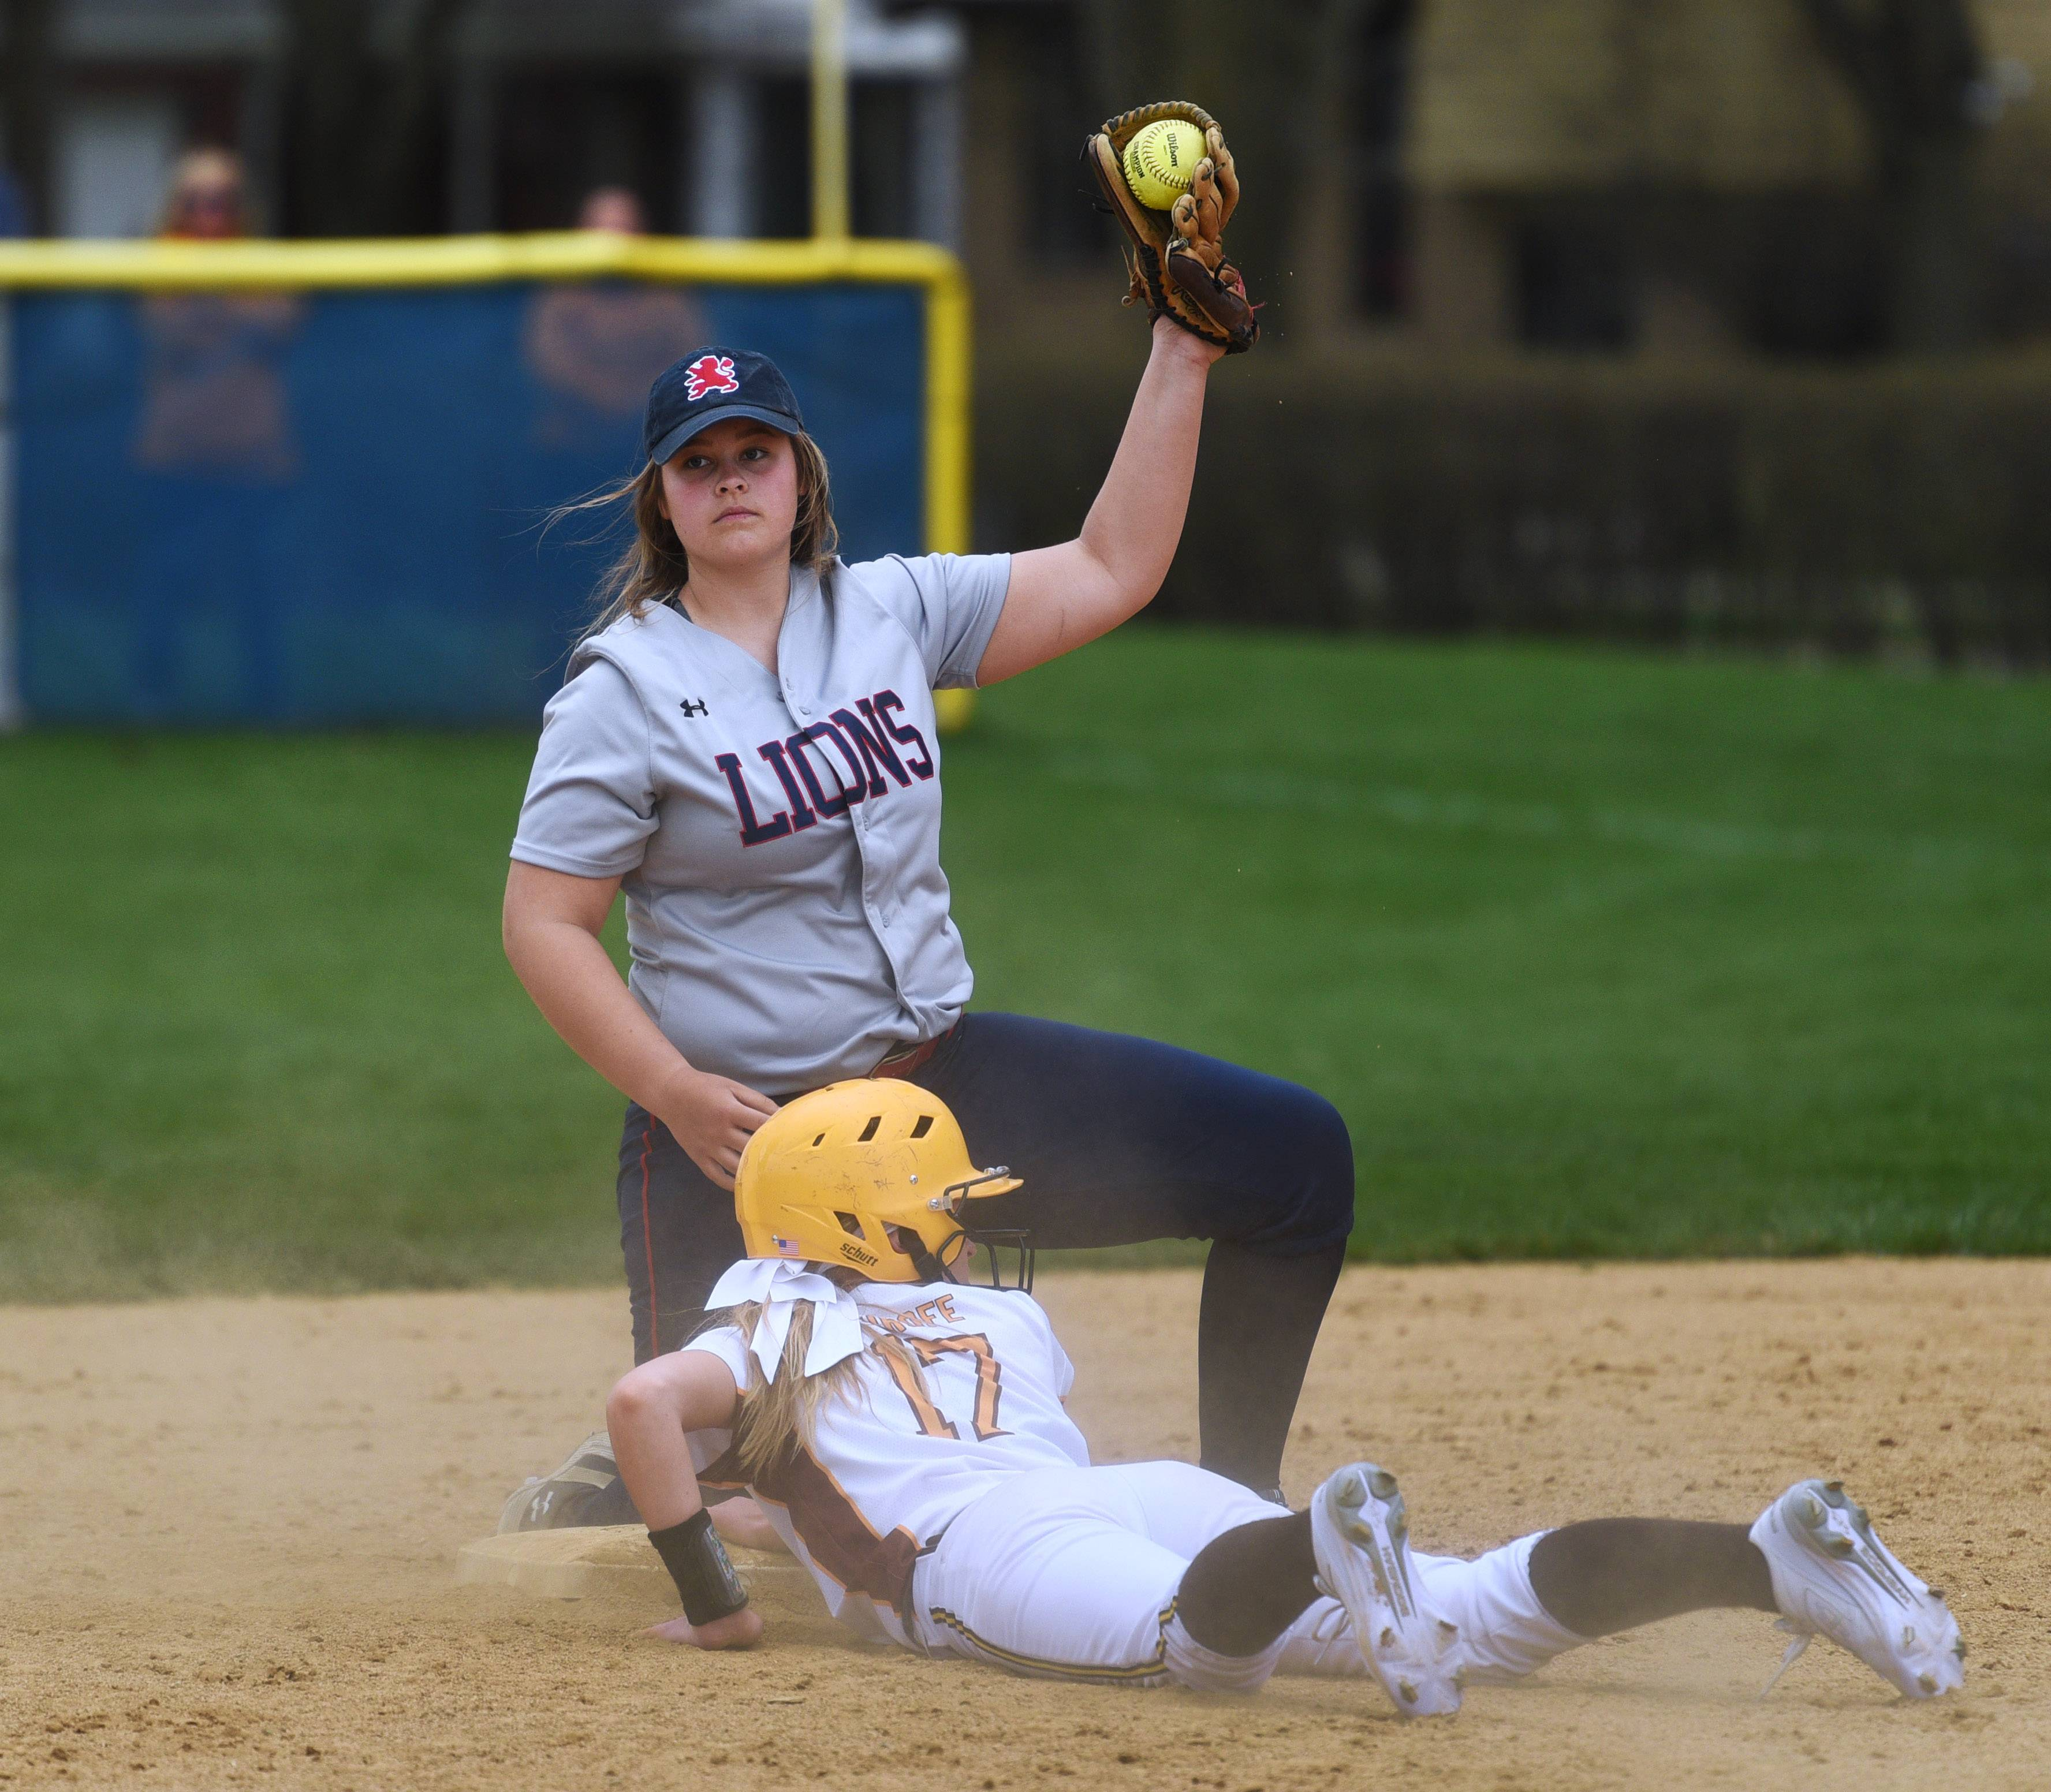 St. Viator's CeCe Kaiser shows the umpired the ball after tagging out Carmel's Caiti Shrofe at second base during Monday's softball game in Arlington Heights.